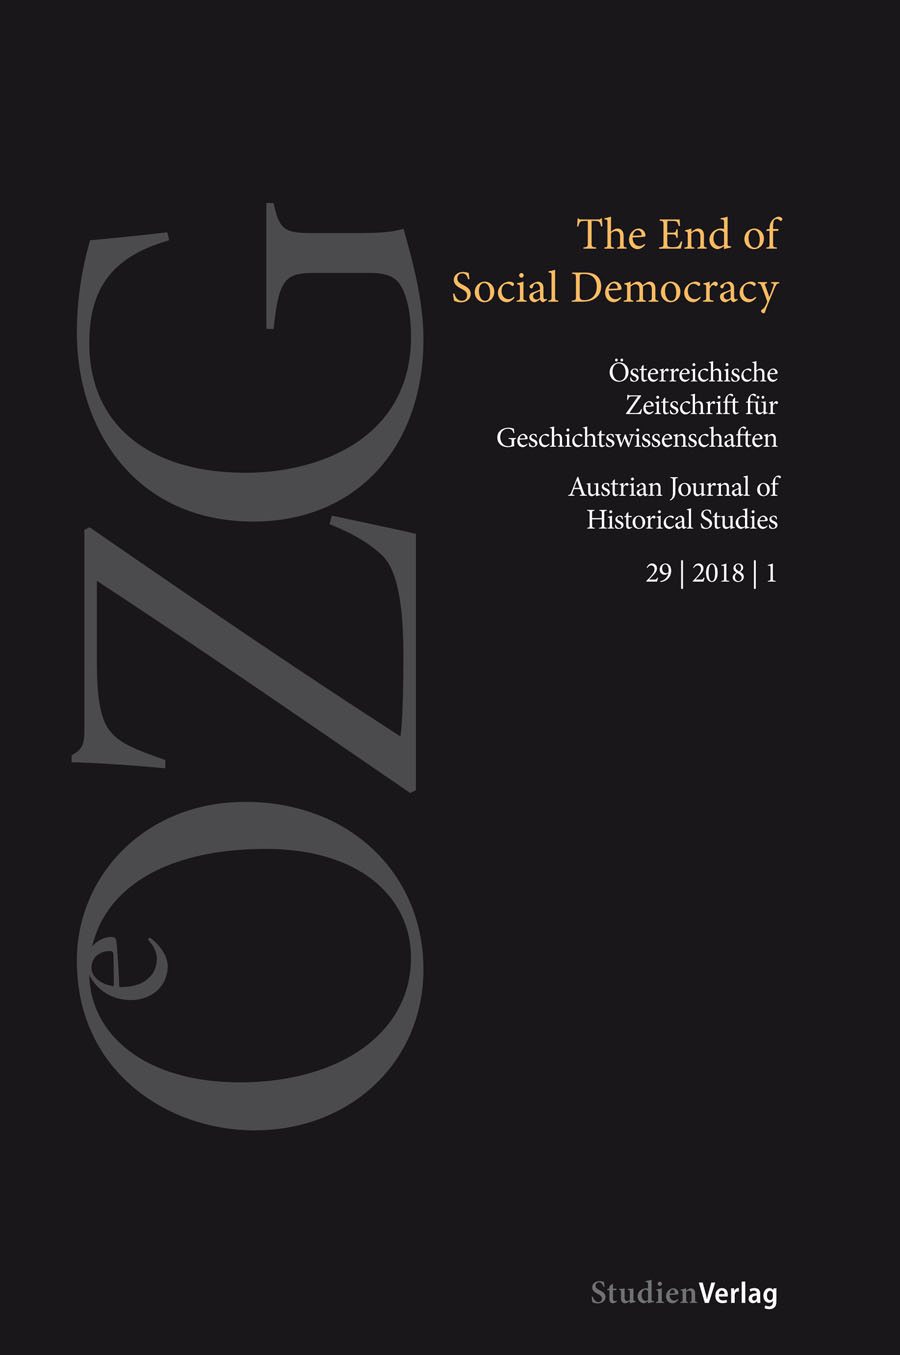 The End of Social Democracy